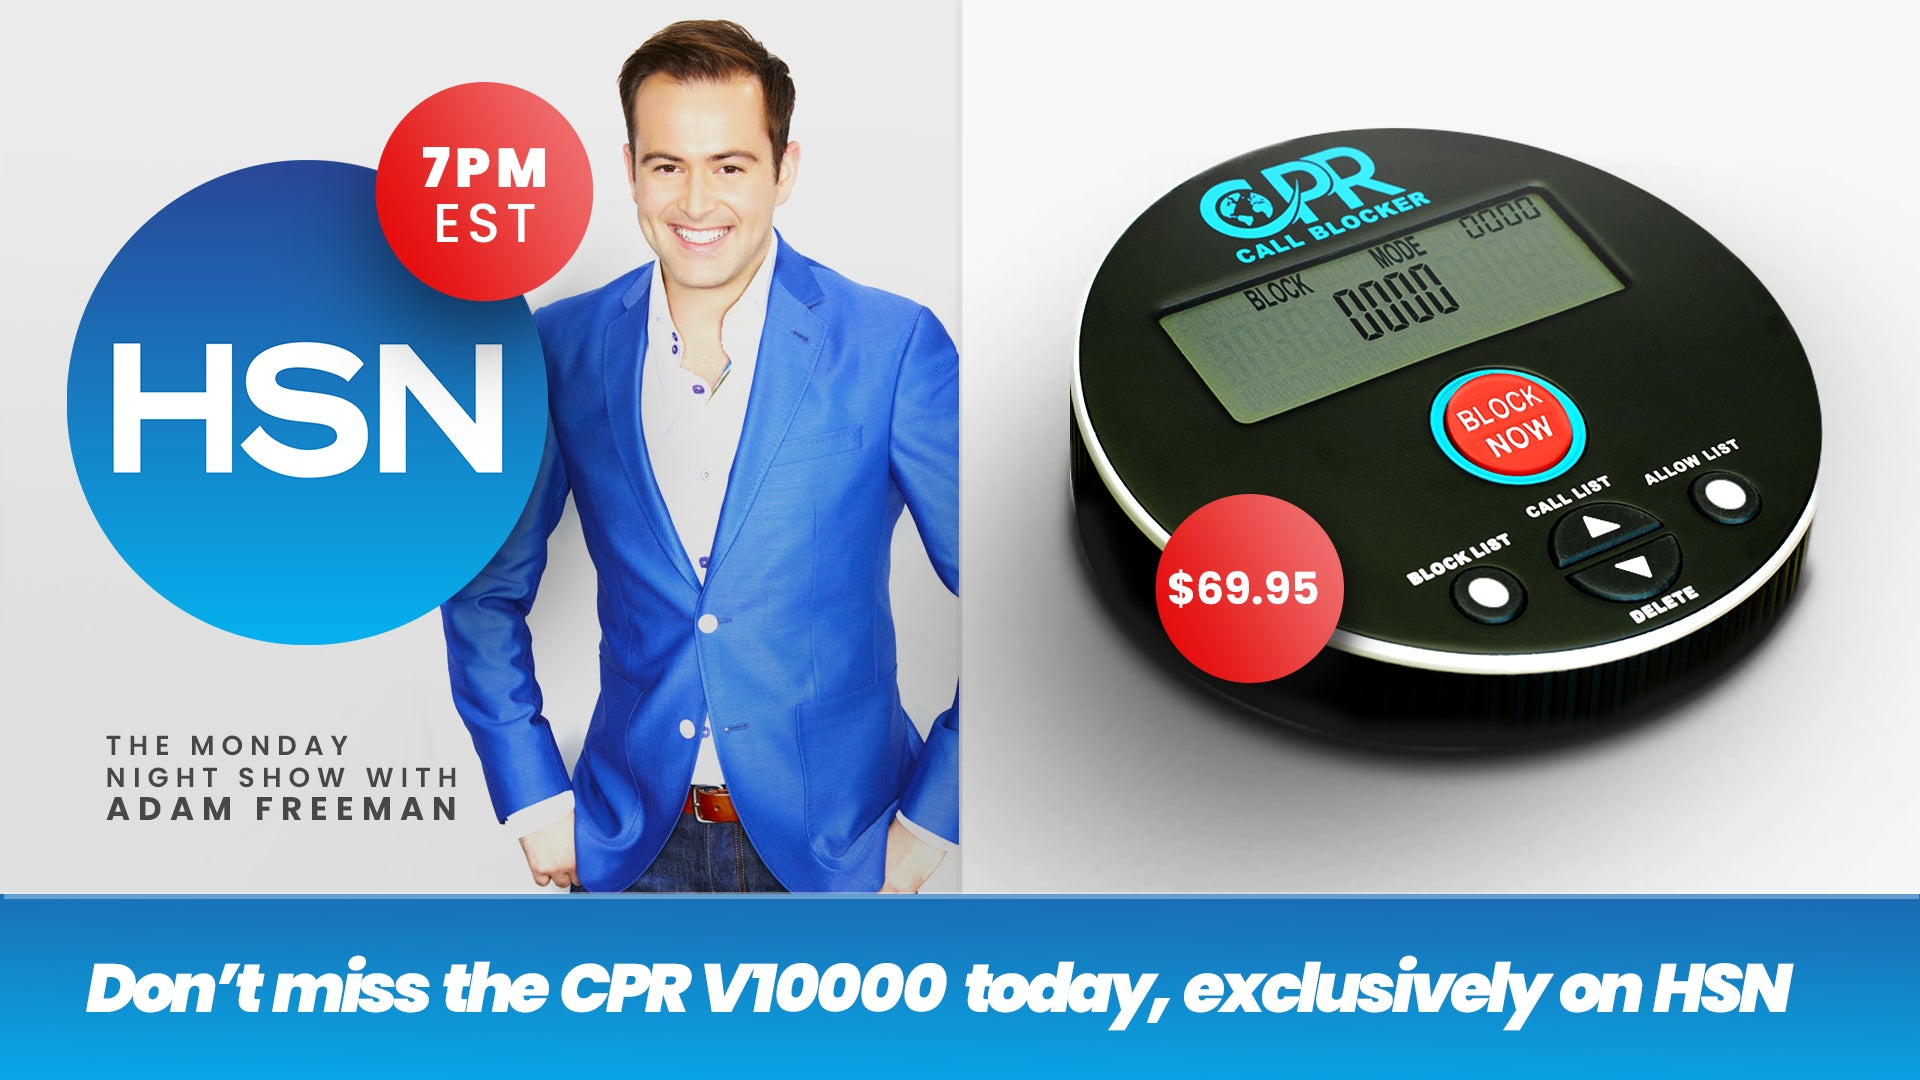 Introducing The Call Blocker V10000 Live on HSN Today 7pm EST